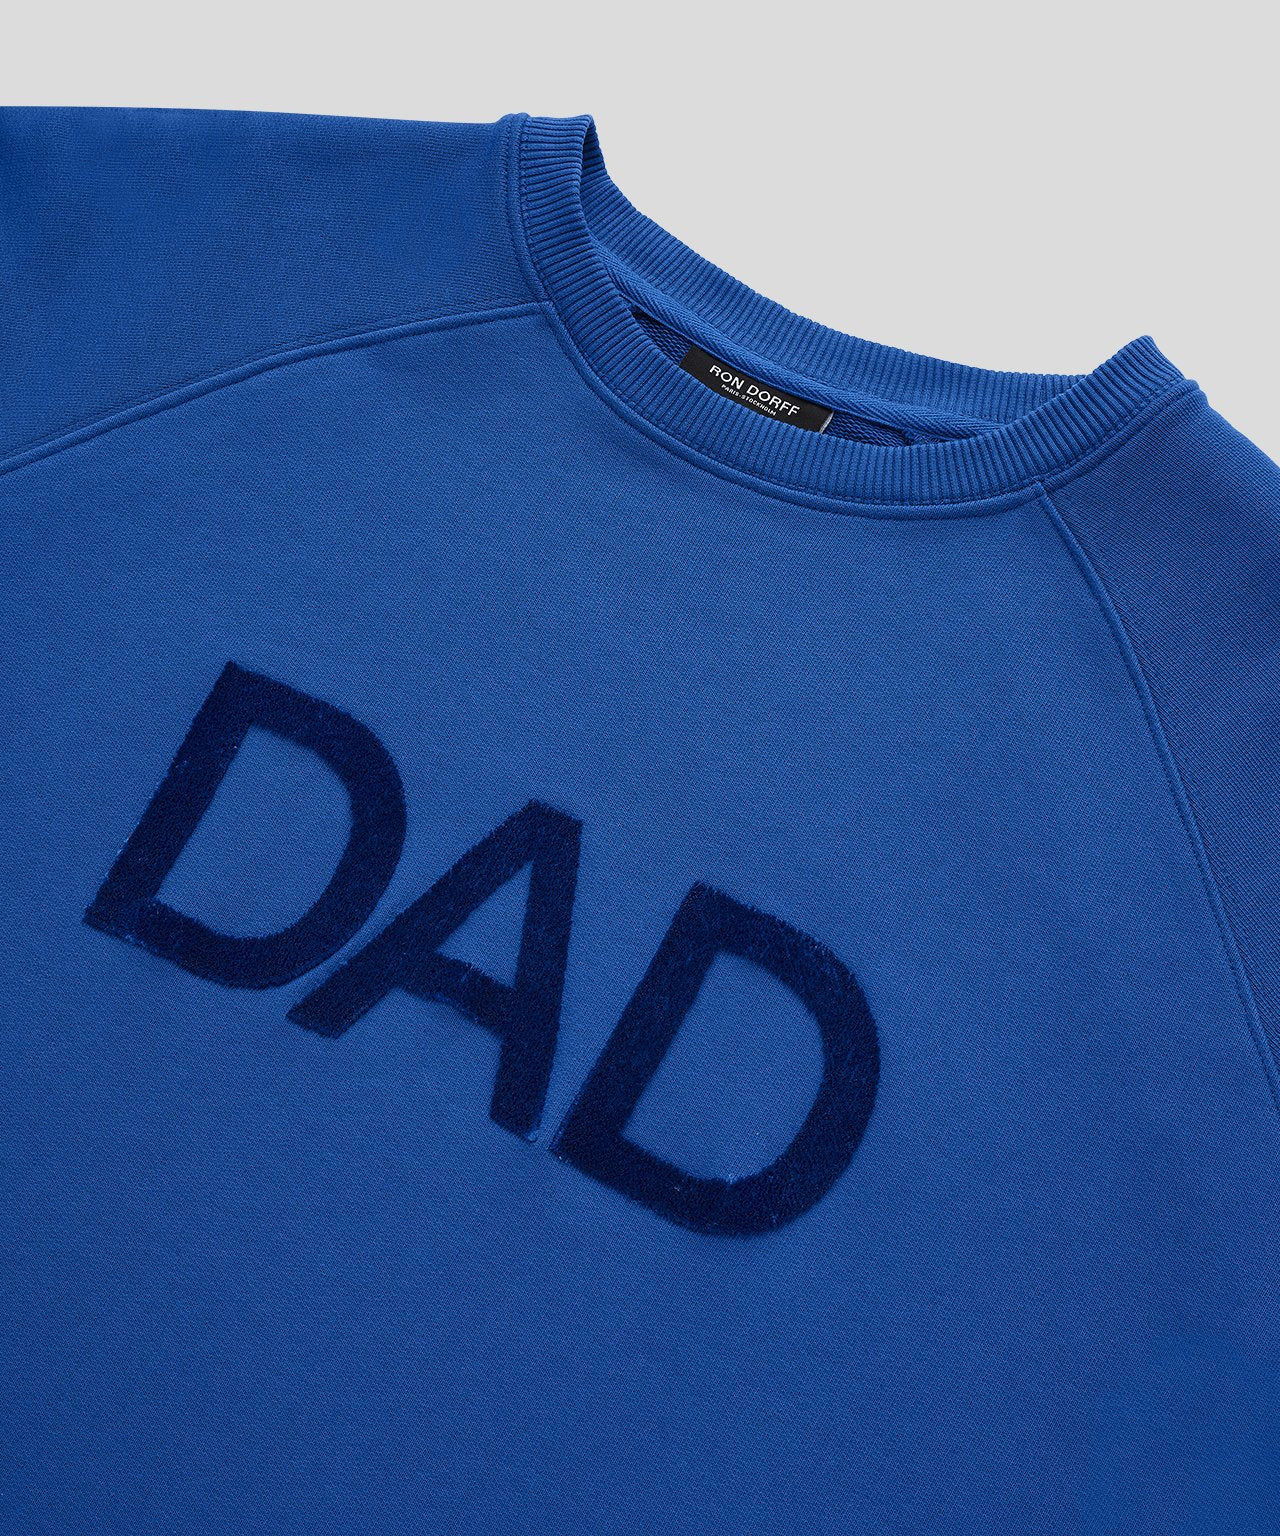 Sweatshirt DAD - electric blue